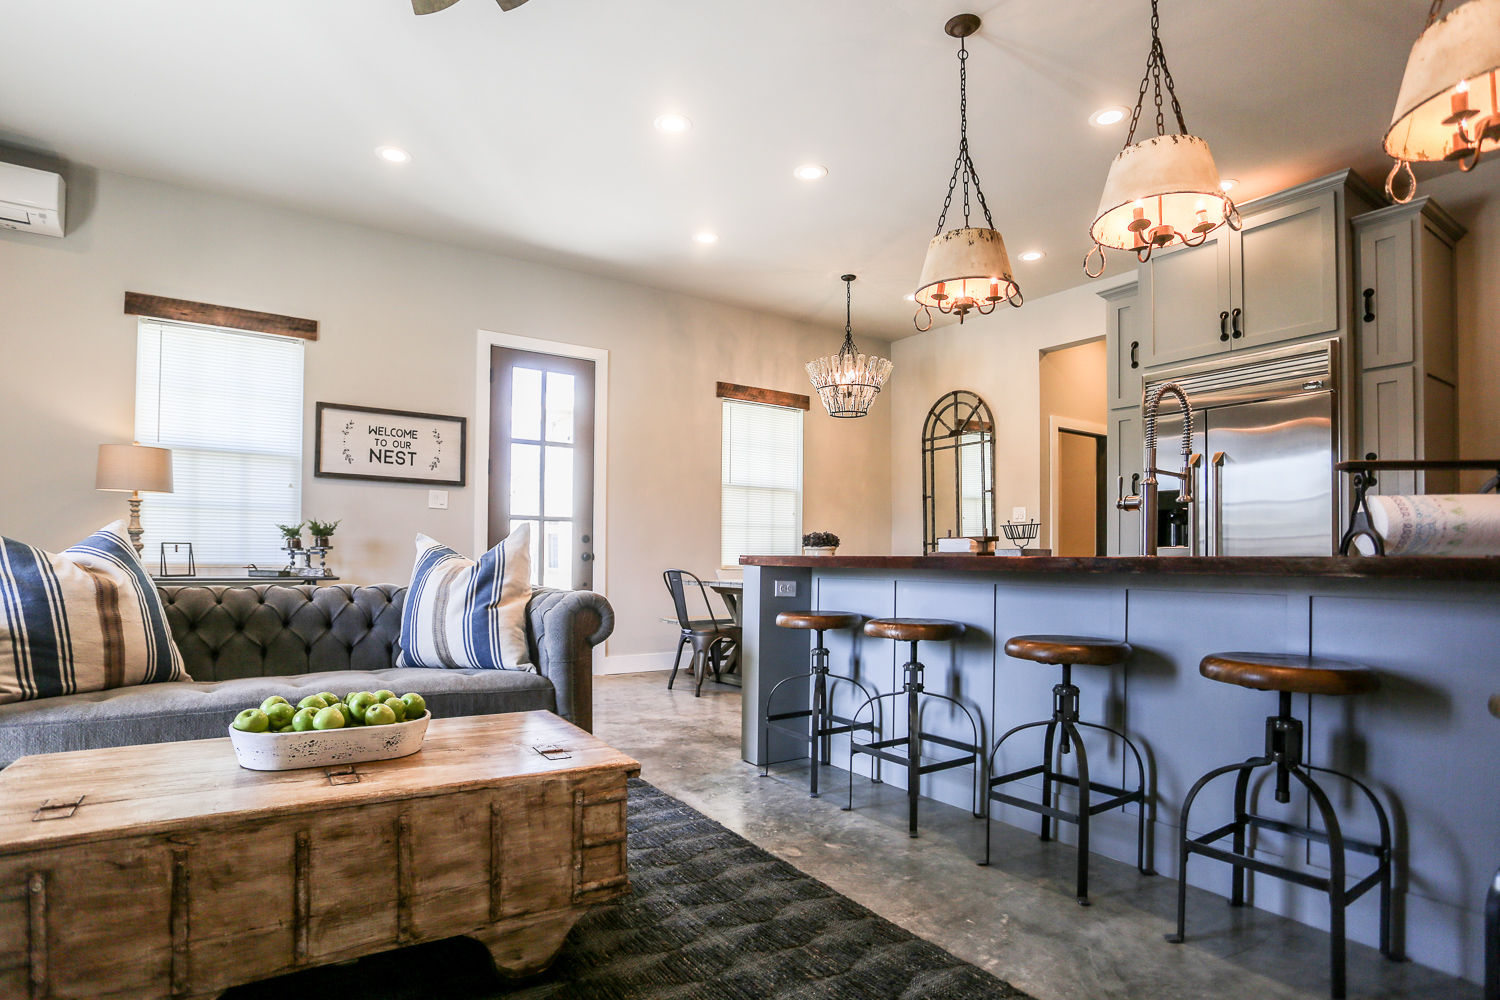 AGAVE NEST - LUXURY FARMHOUSE SUITE 1 BED | 1 BATH   Features: 1 Bedroom, Walking Distance, Luxury Design, Full Kitchen